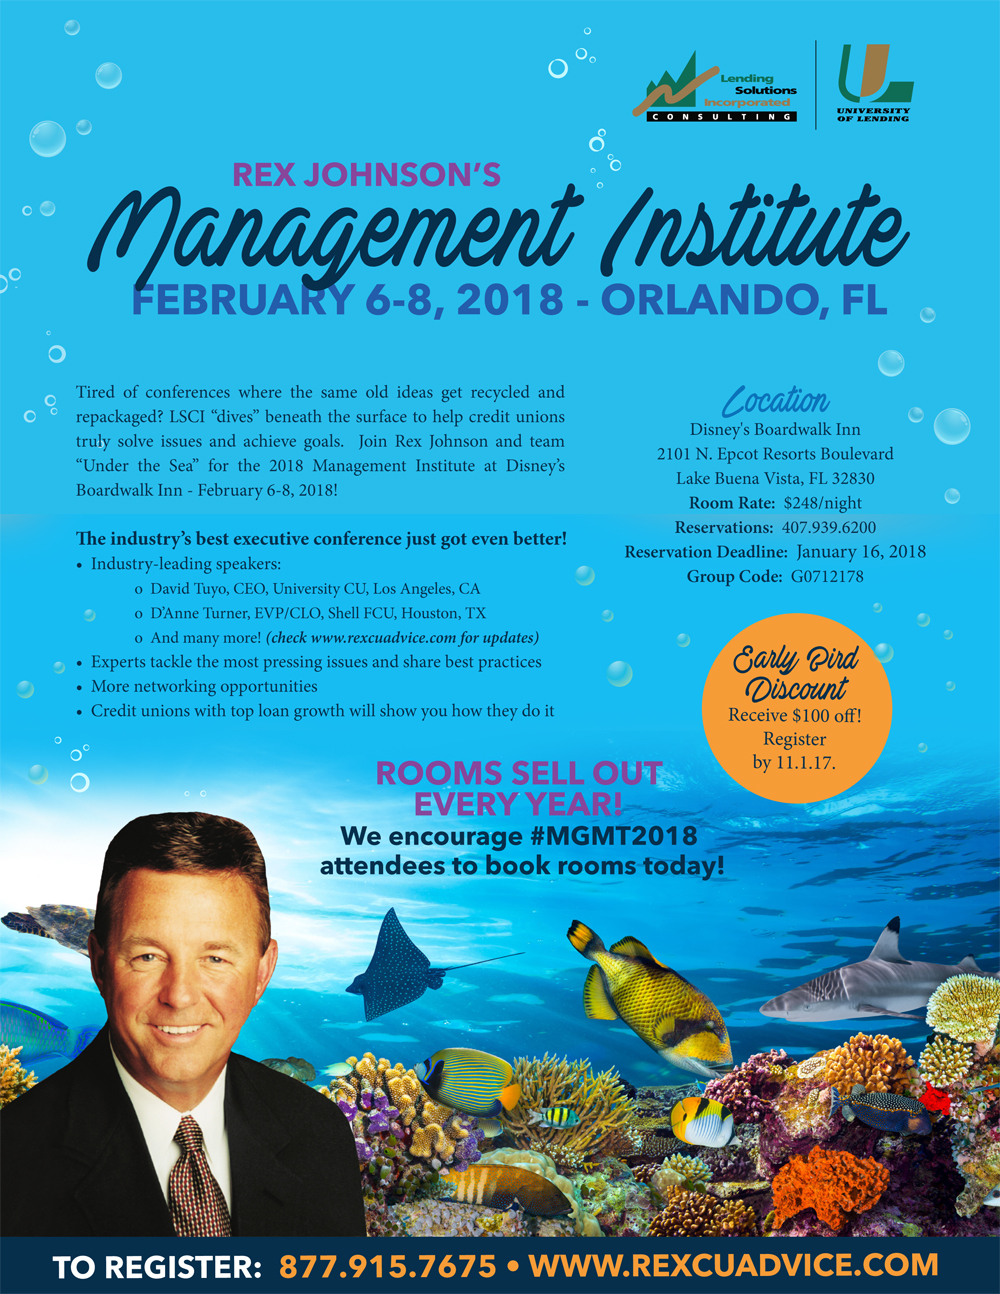 Management Institute for CEOs and Managers - Orlando, FL -  February 6-8, 2018